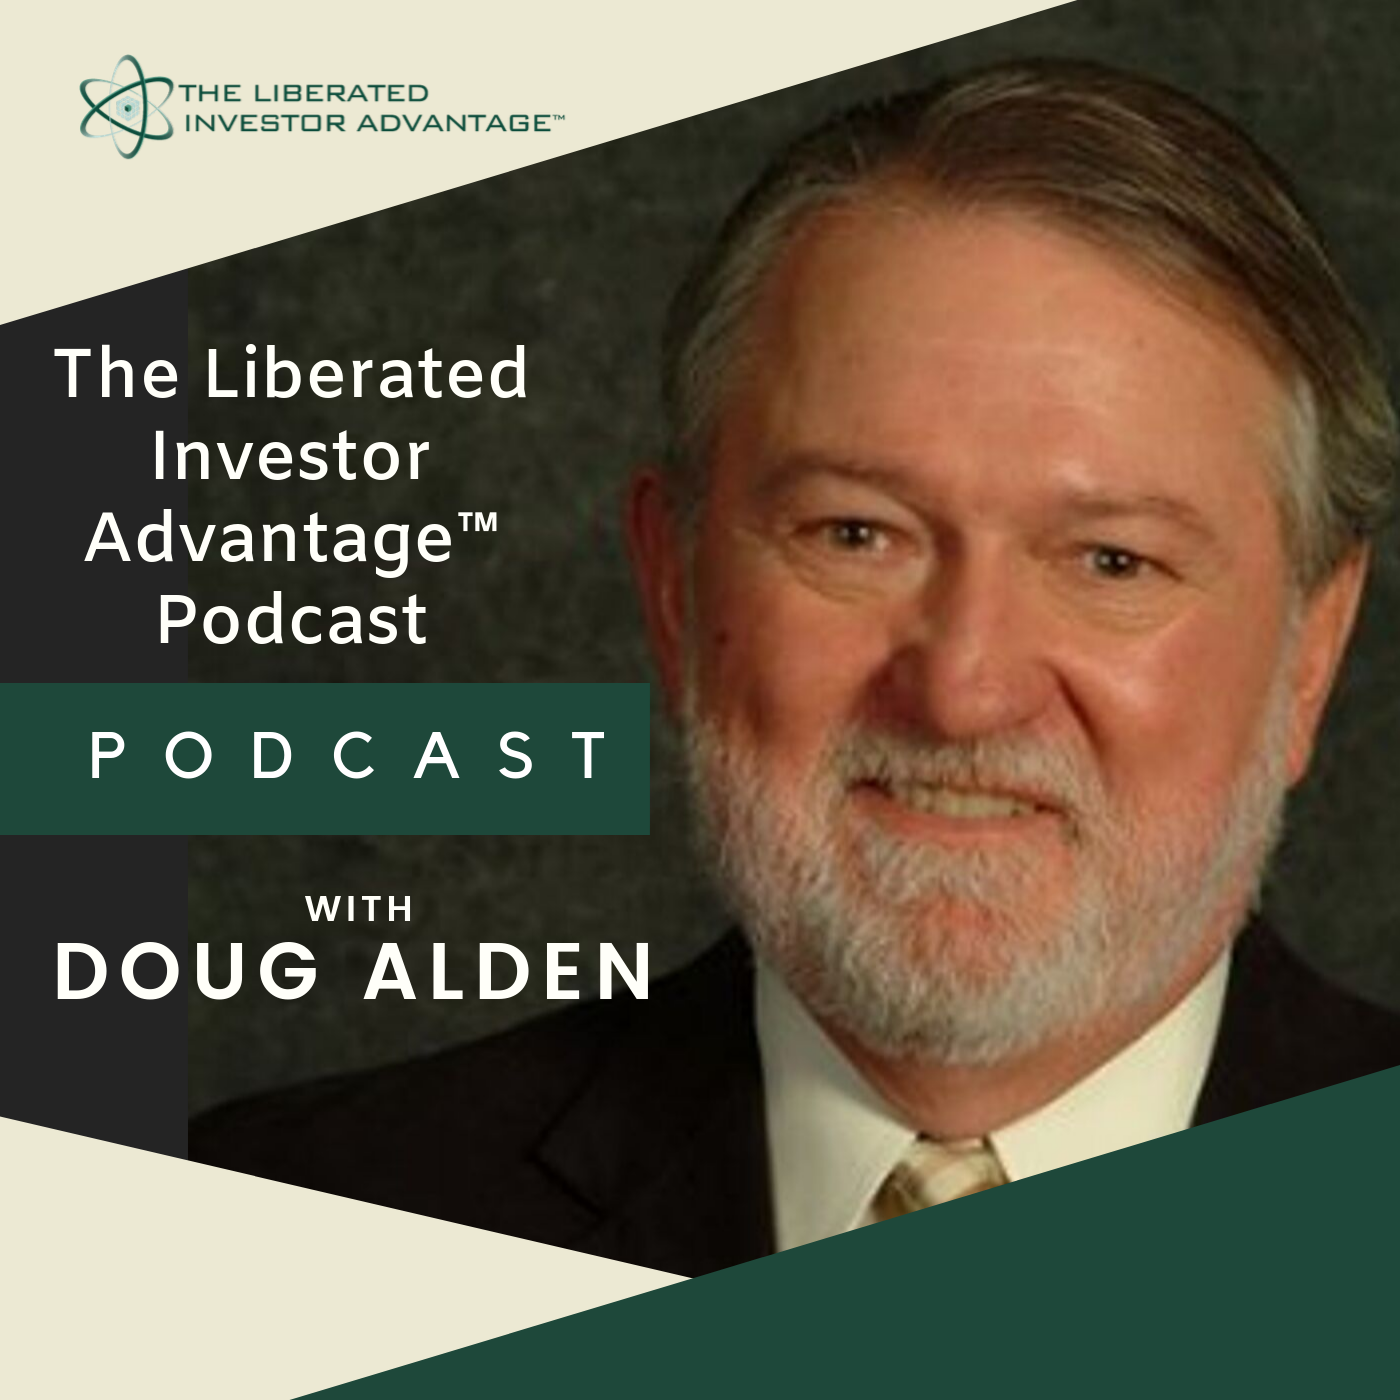 The Liberated Investor Advantage